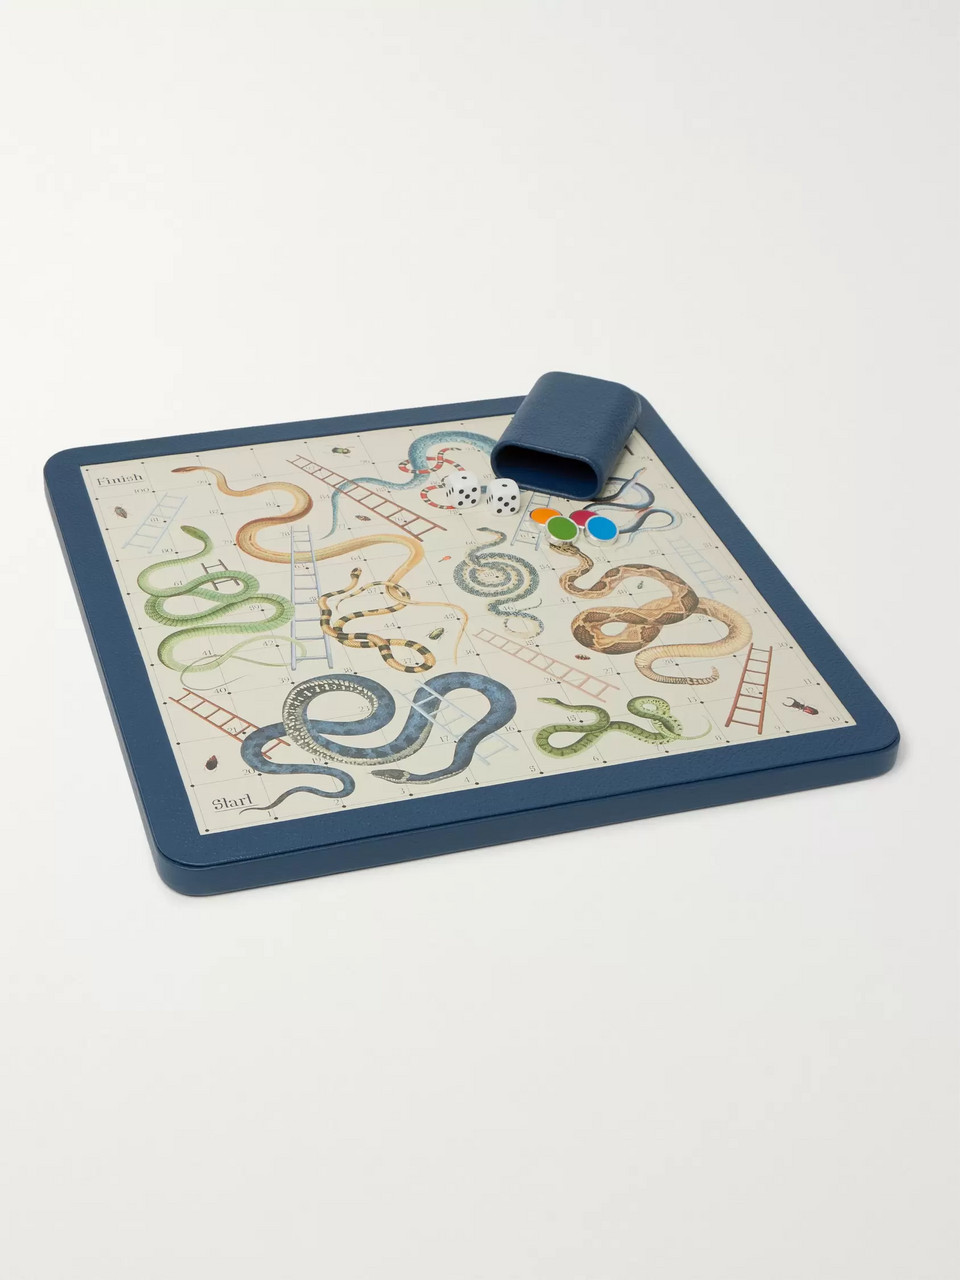 William & Son Leather Snakes and Ladders Set